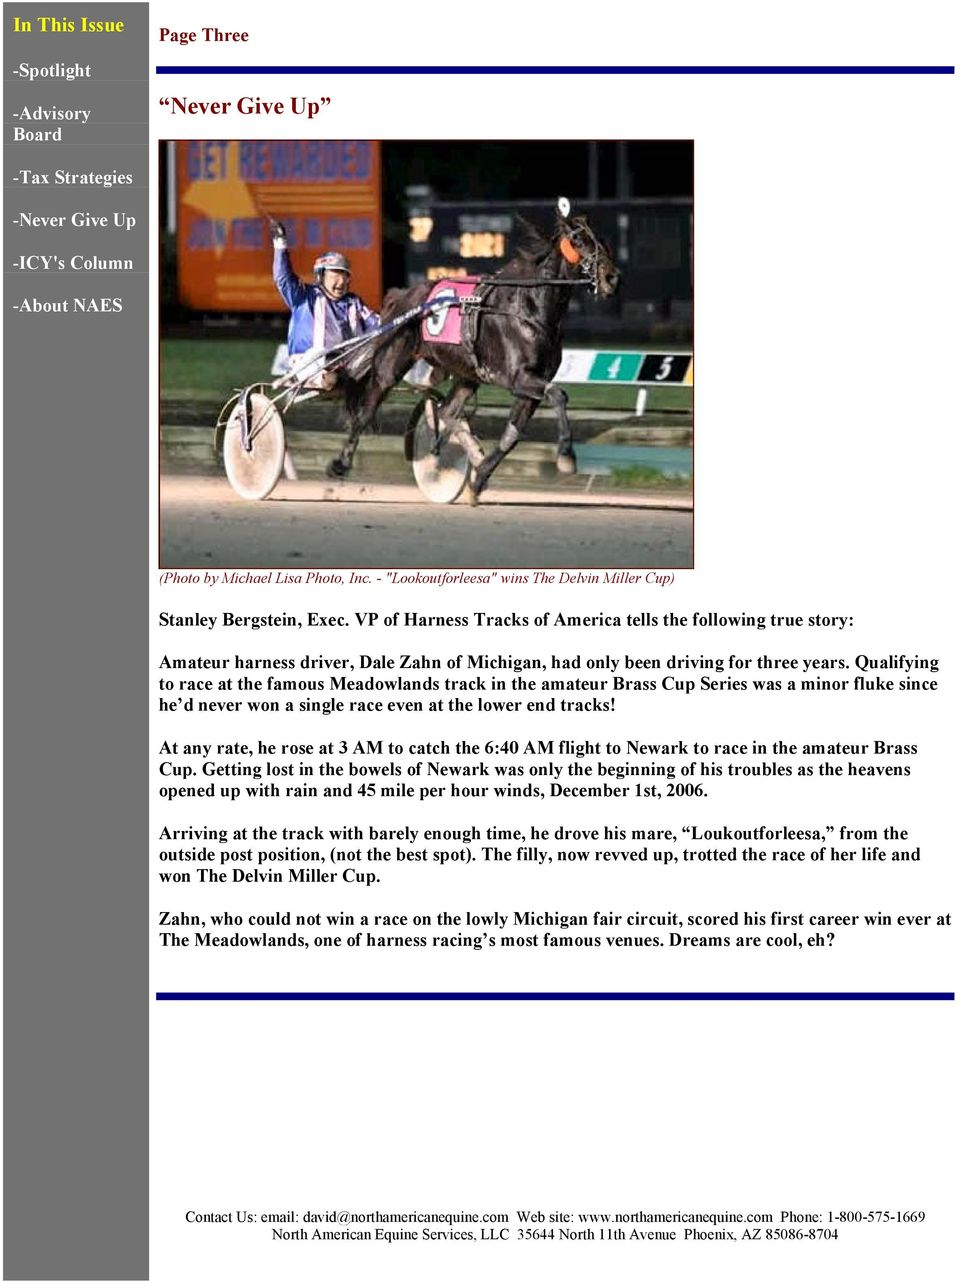 Qualifying to race at the famous Meadowlands track in the amateur Brass Cup Series was a minor fluke since he d never won a single race even at the lower end tracks!